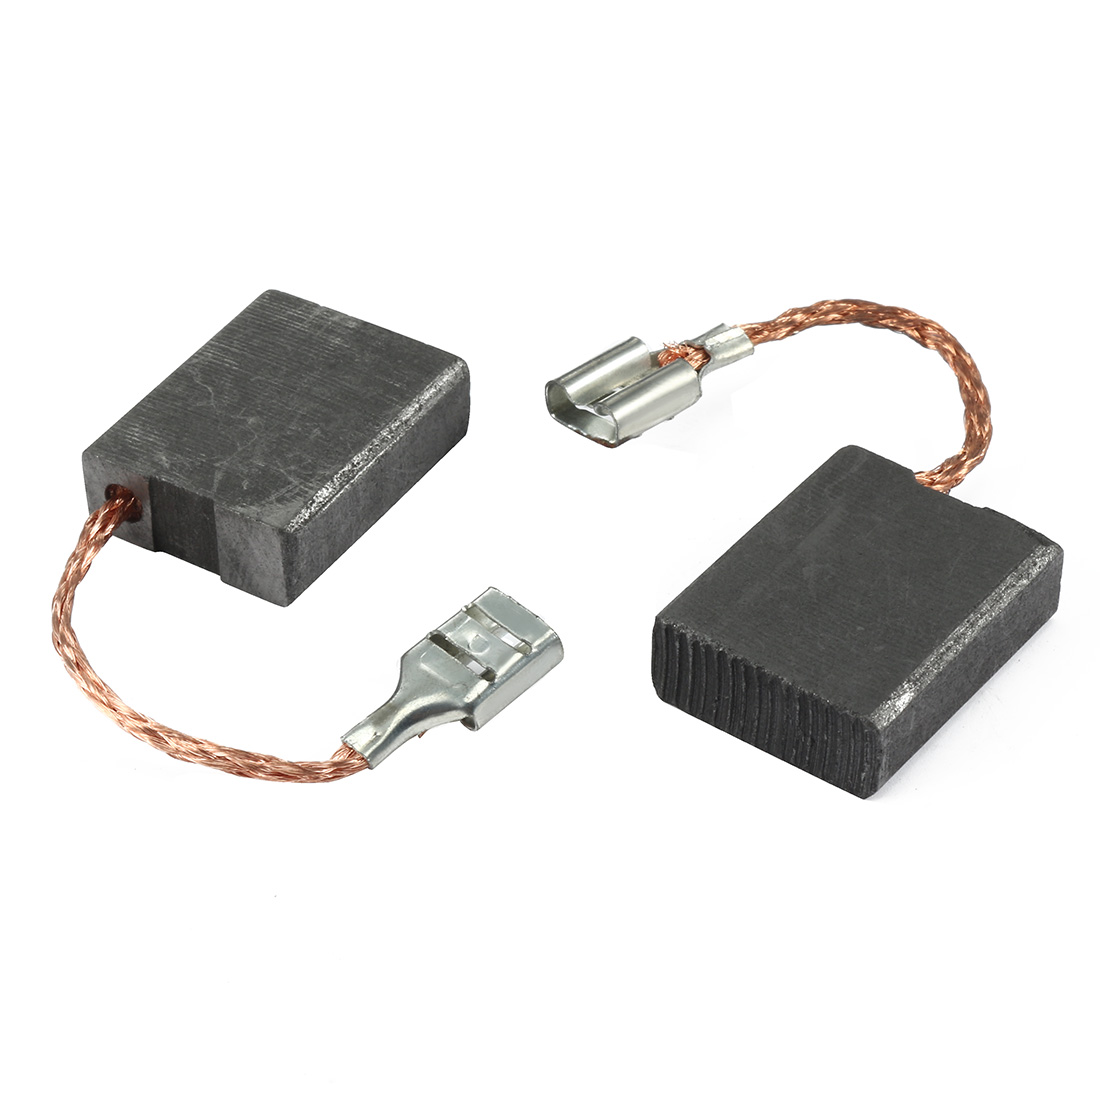 Pair Carbon Motor Brushes Spare Part Power Tool 7mm x 17mm x 21.5mm